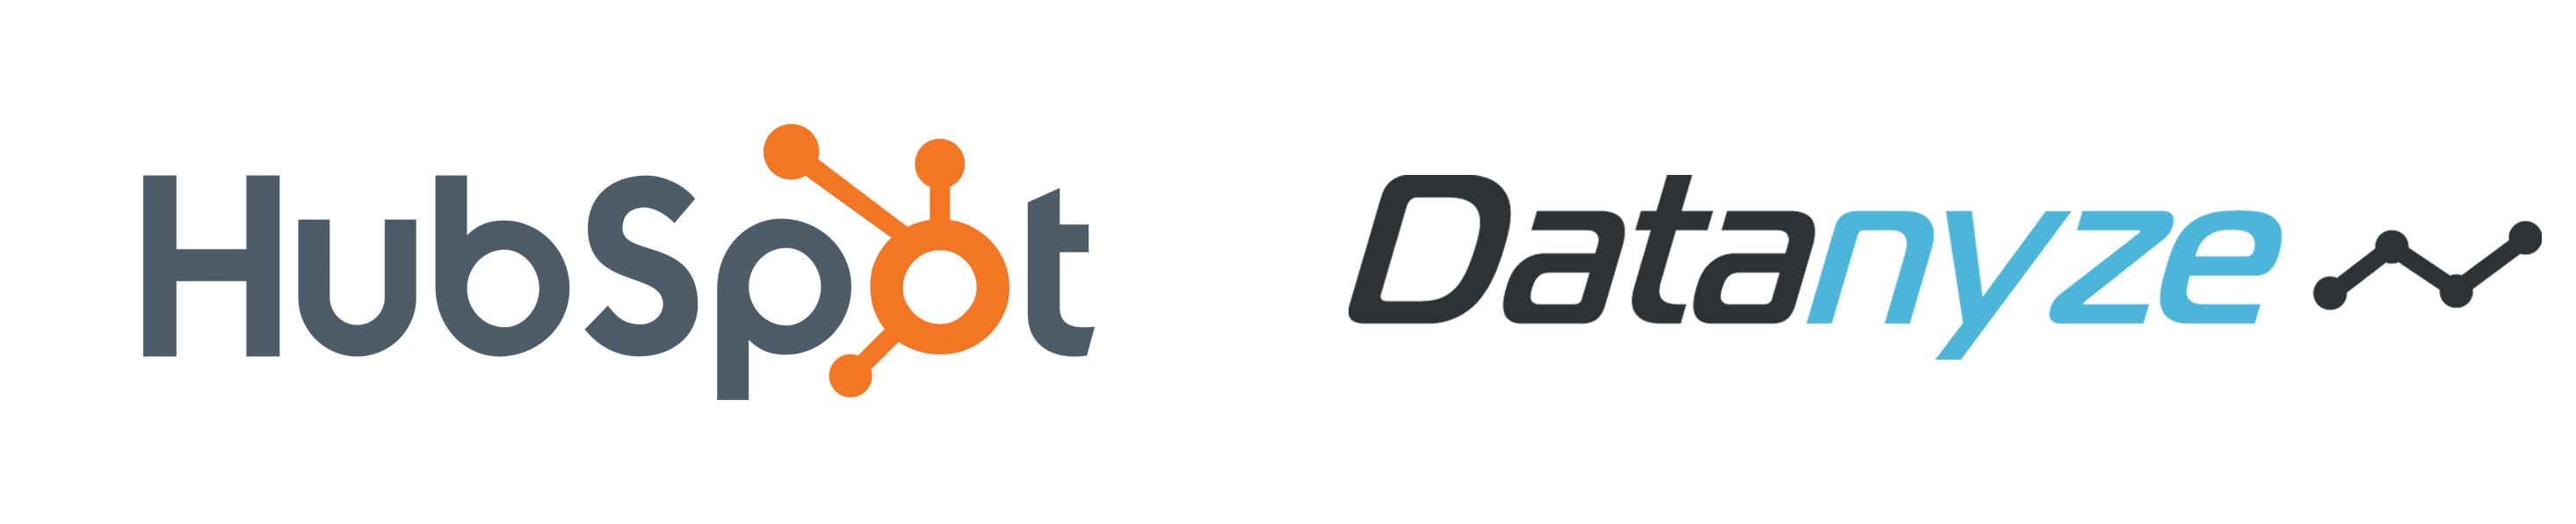 HubSpot and Datanyze